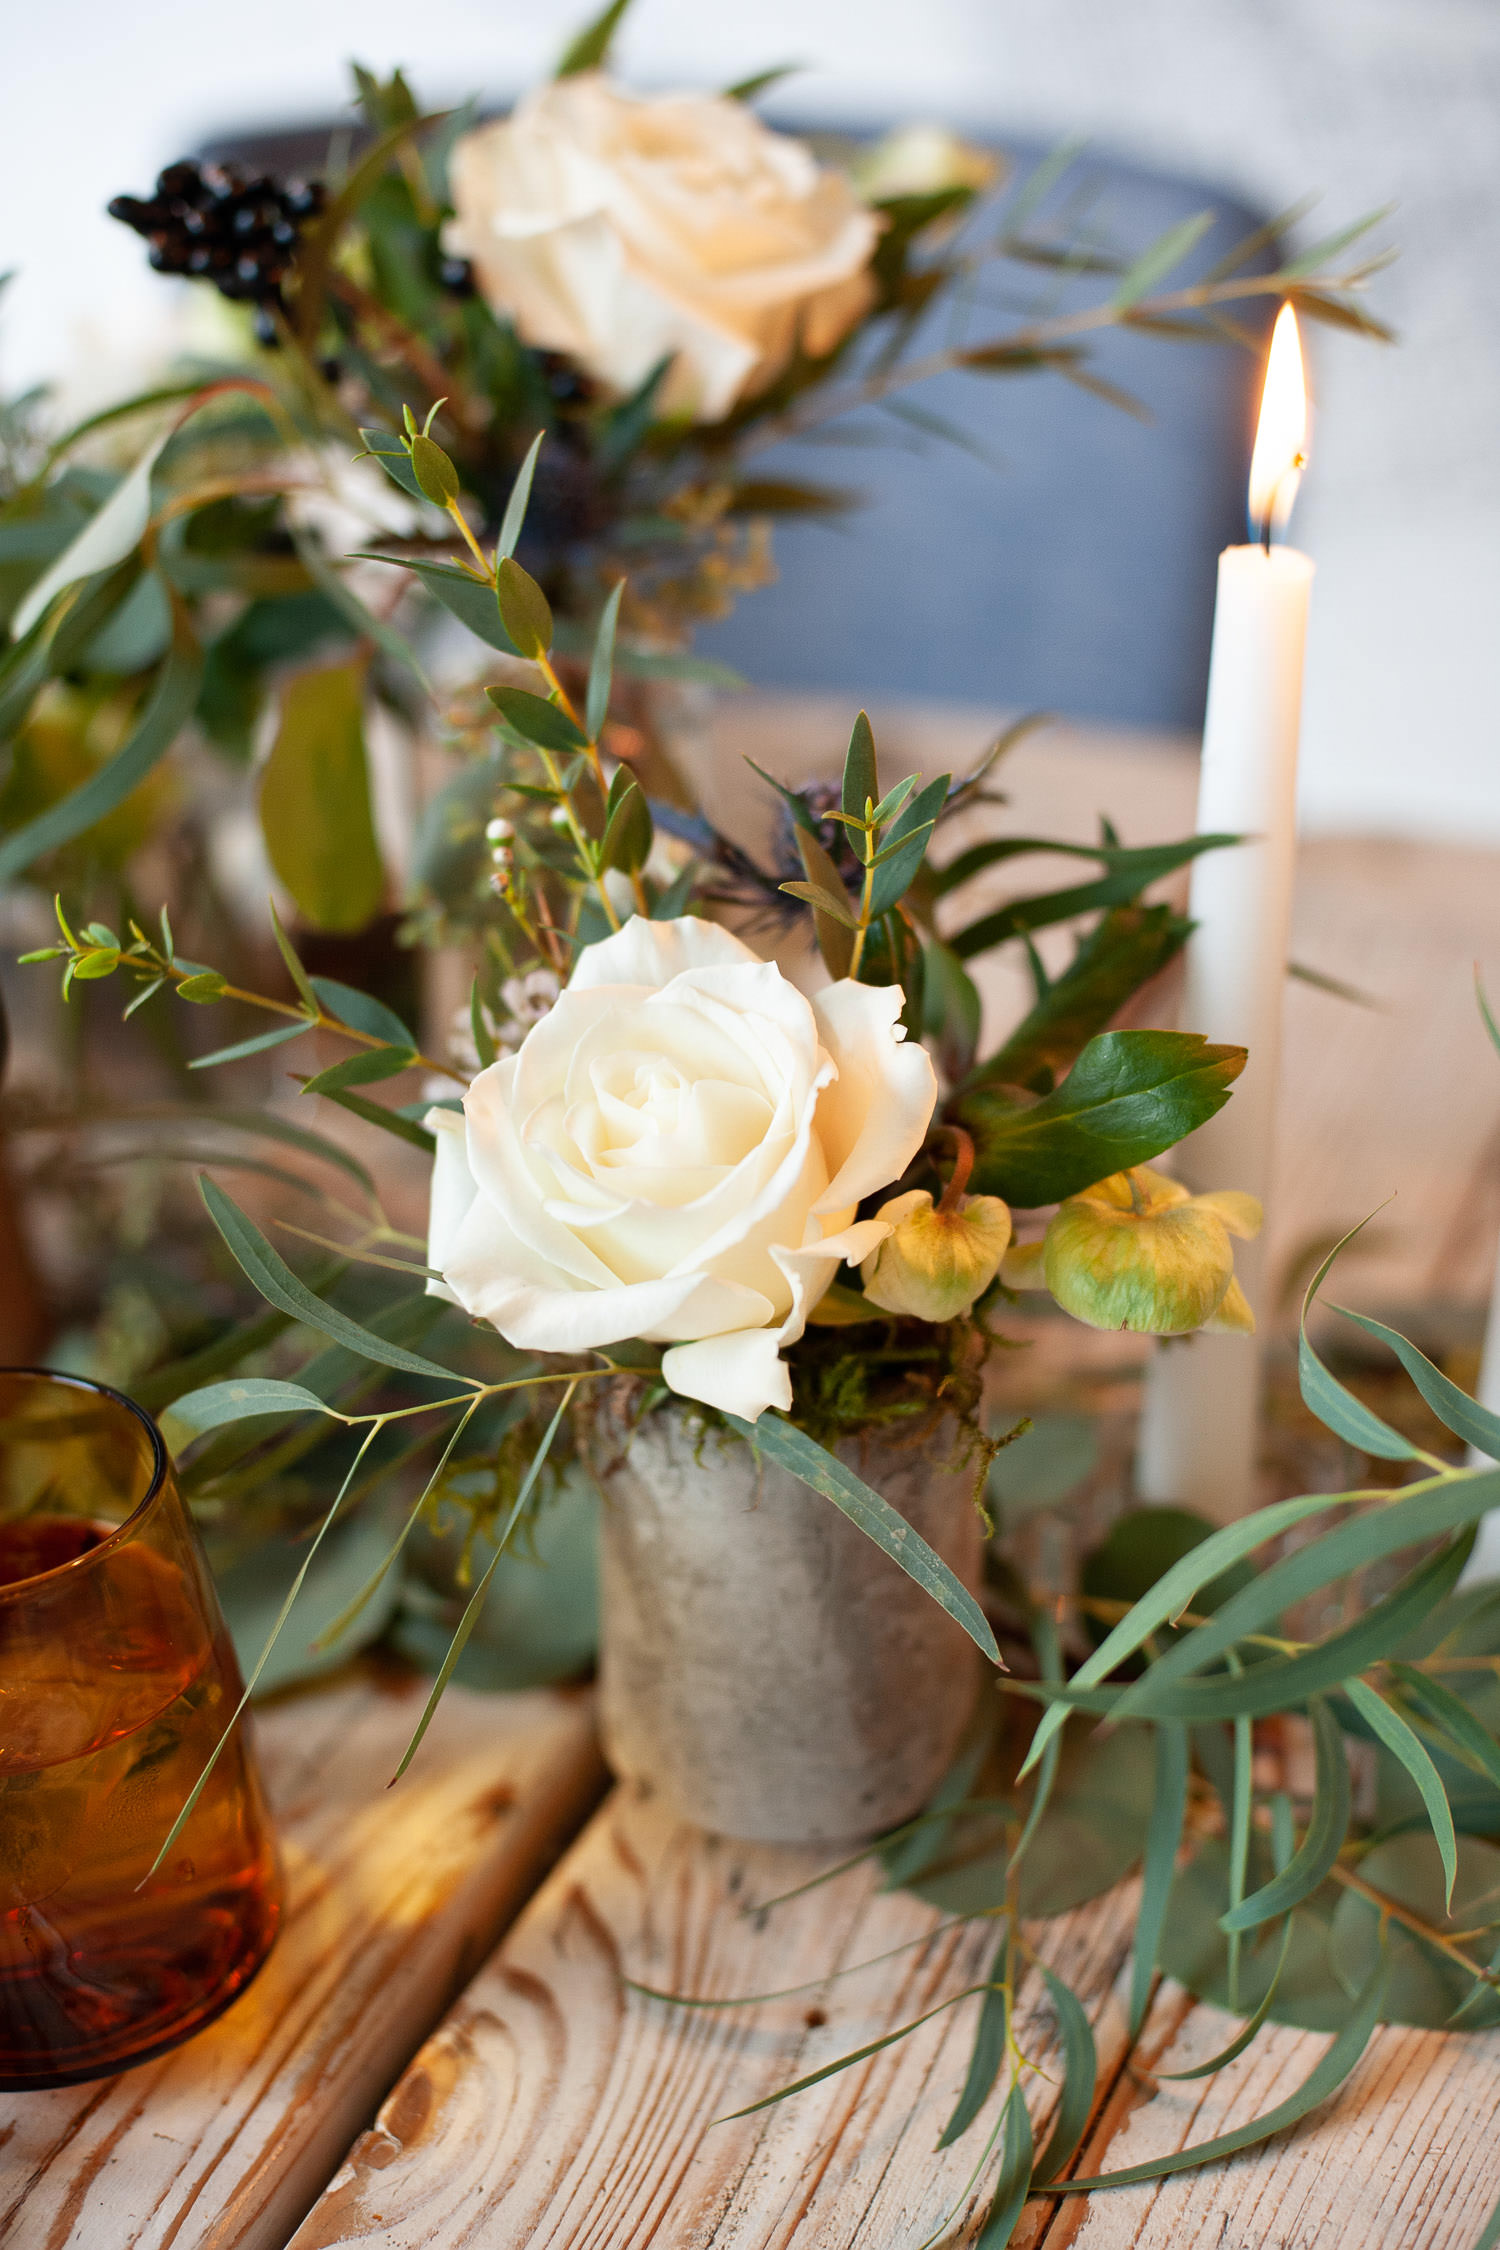 Floral details on Hanukkah table captured by Calgary wedding photographer Tara Whittaker